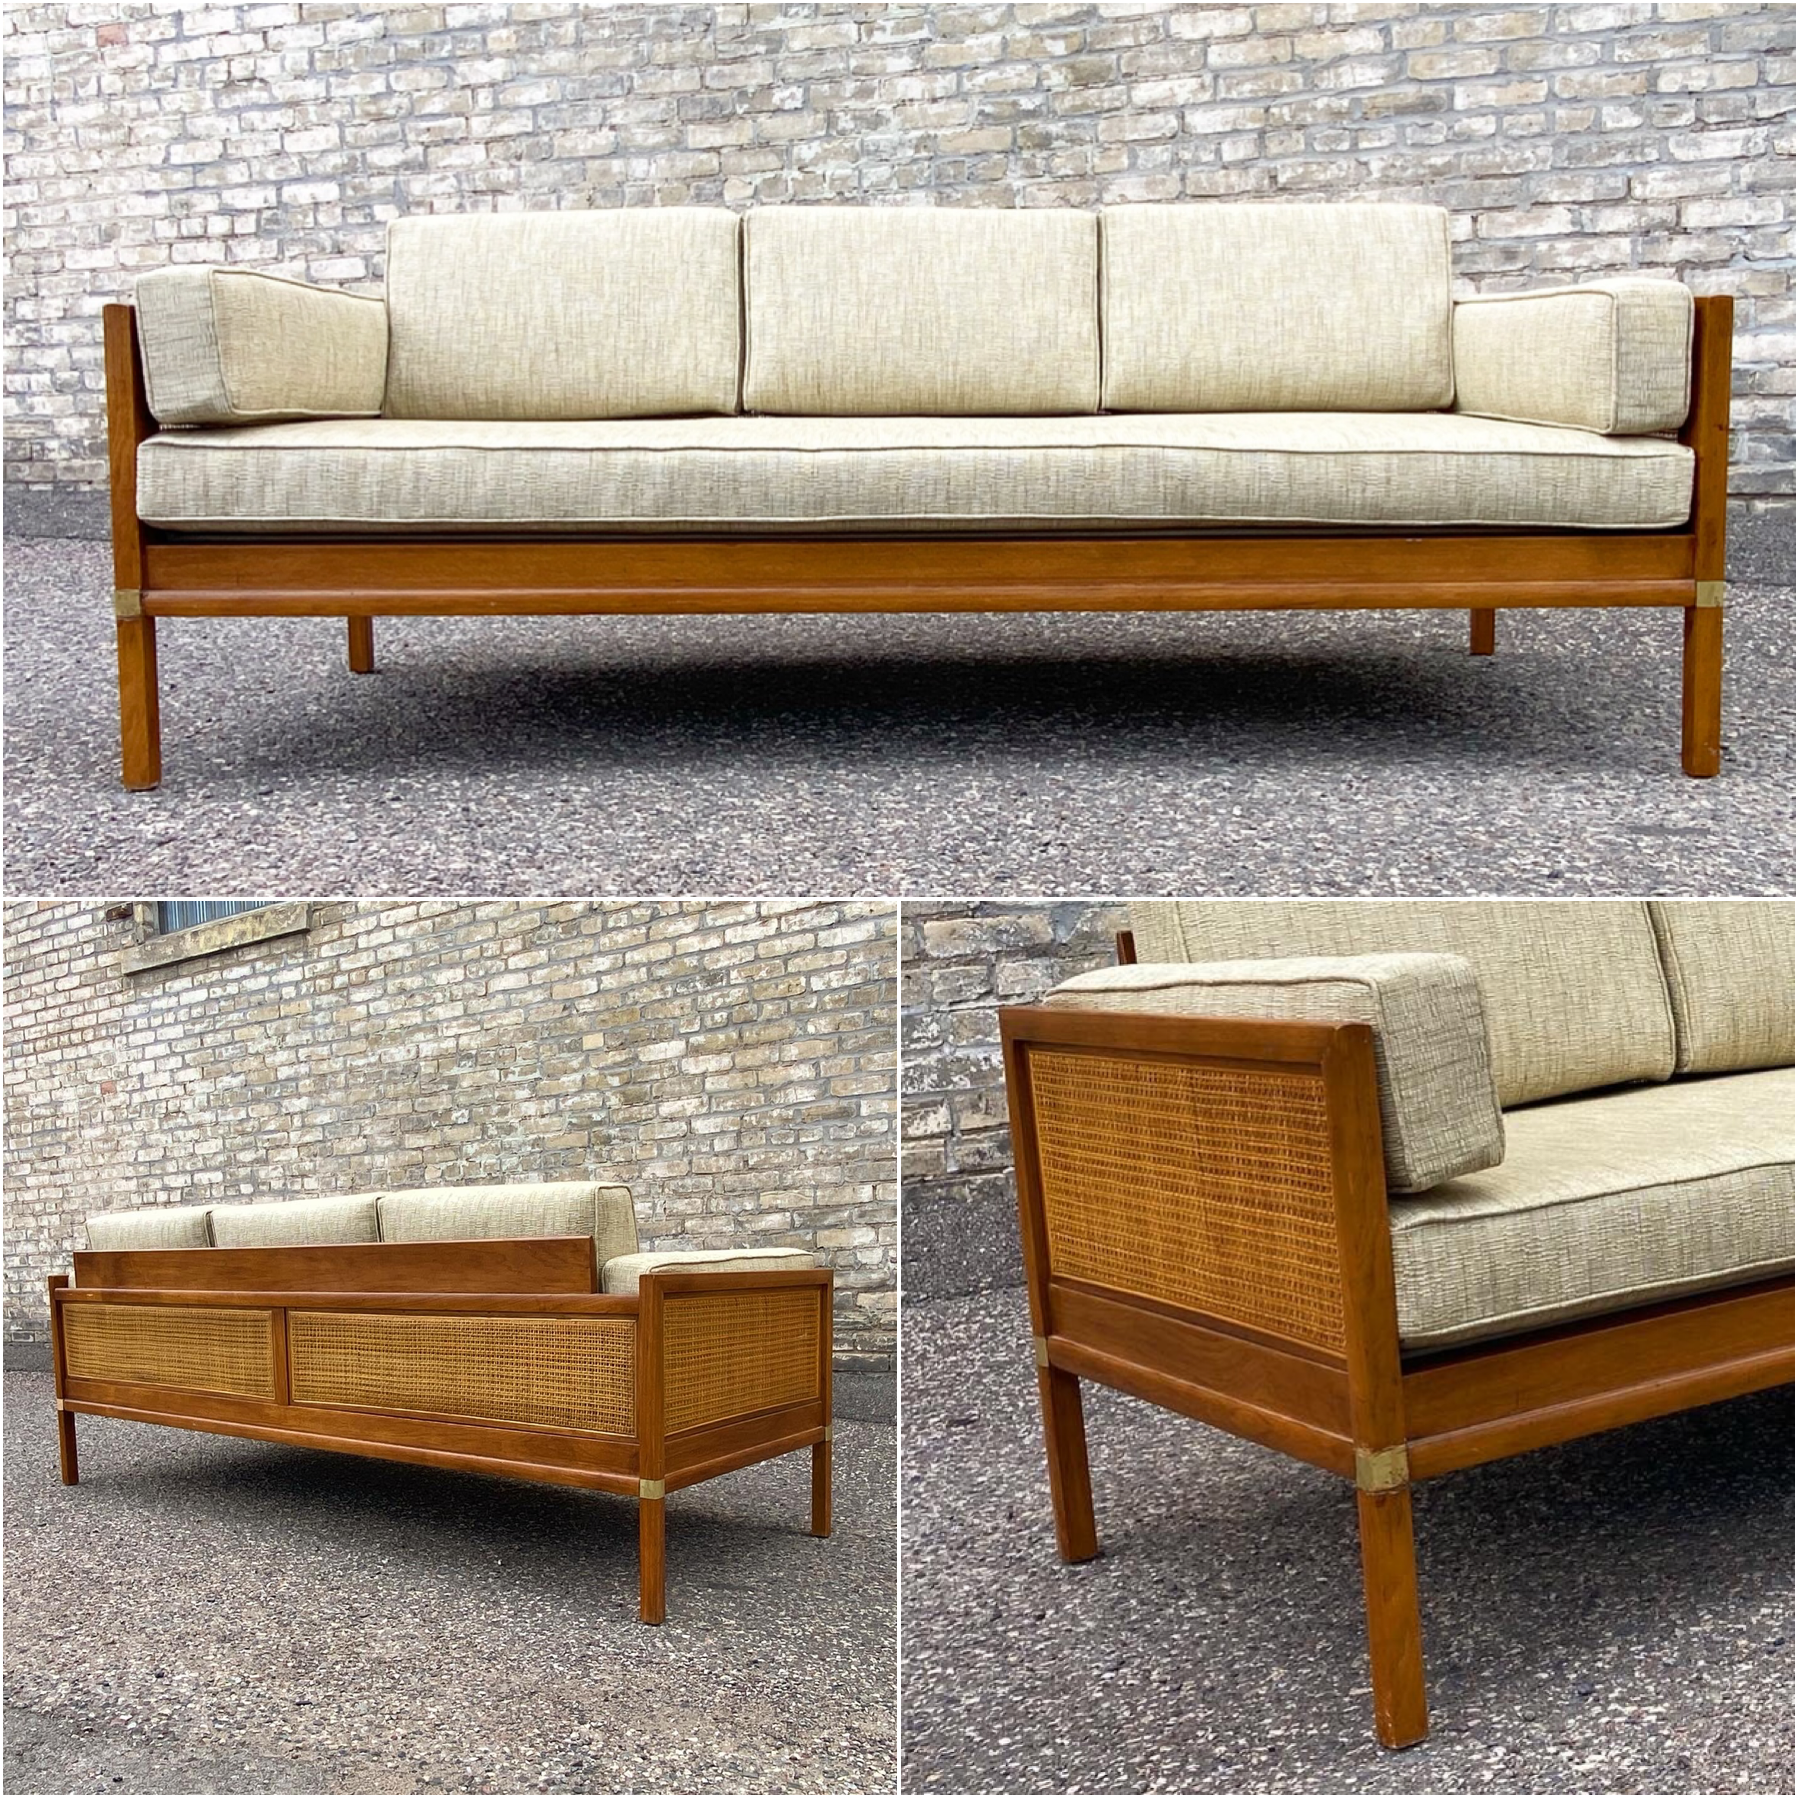 Modern campaign style sofa - daybed